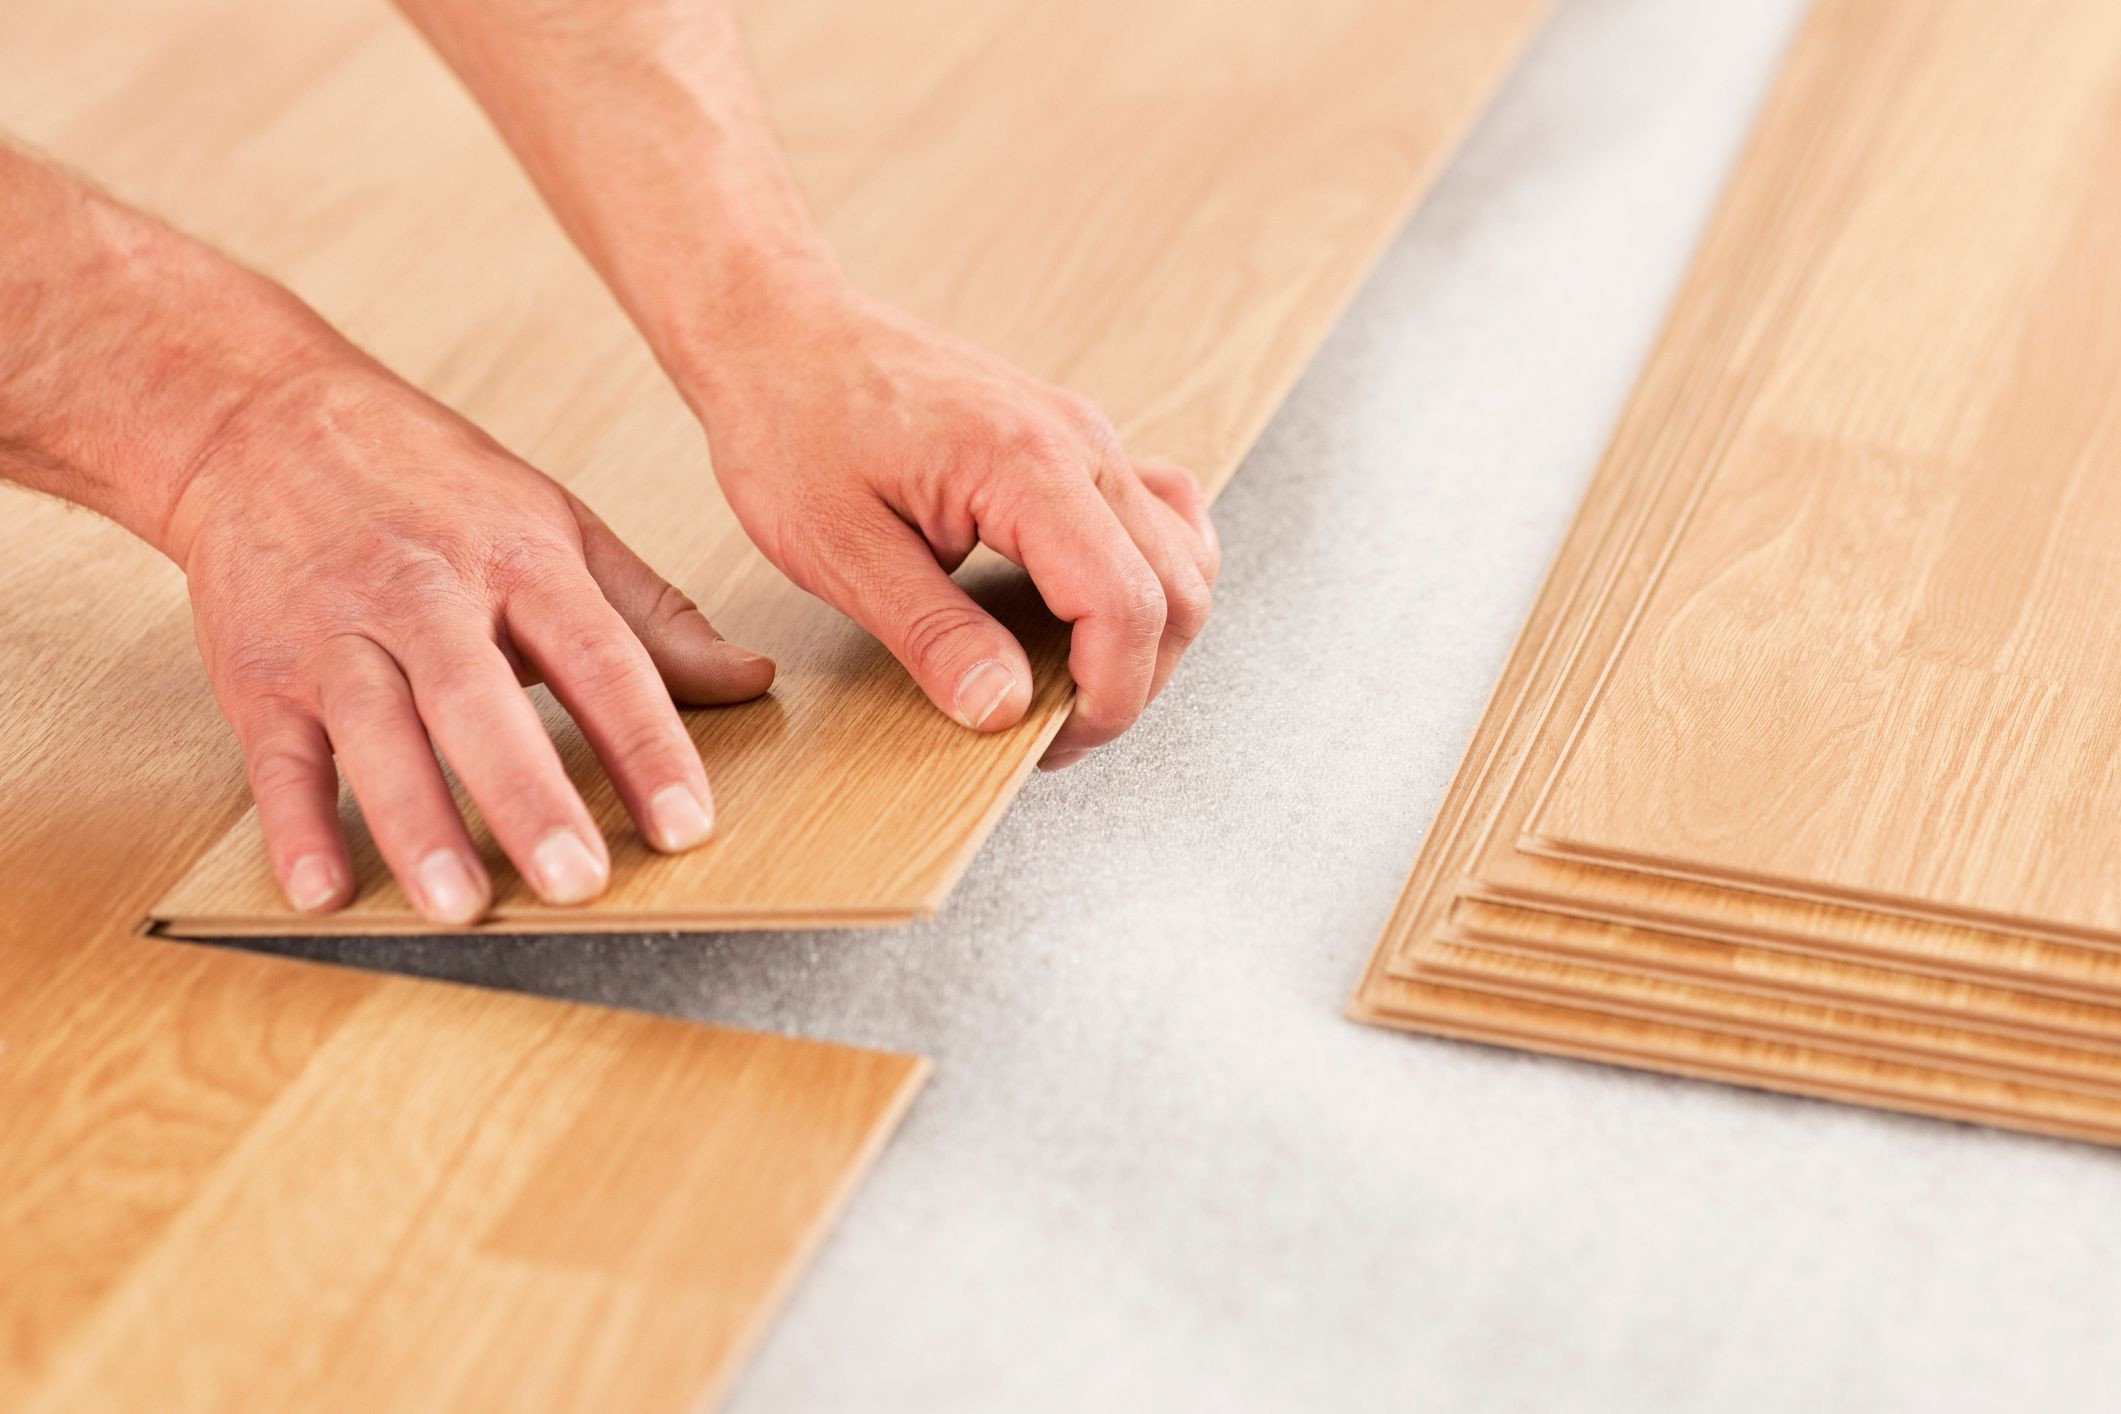 plank hardwood flooring canada of laminate underlayment pros and cons with regard to laminate floor install gettyimages 154961561 588816495f9b58bdb3da1a02